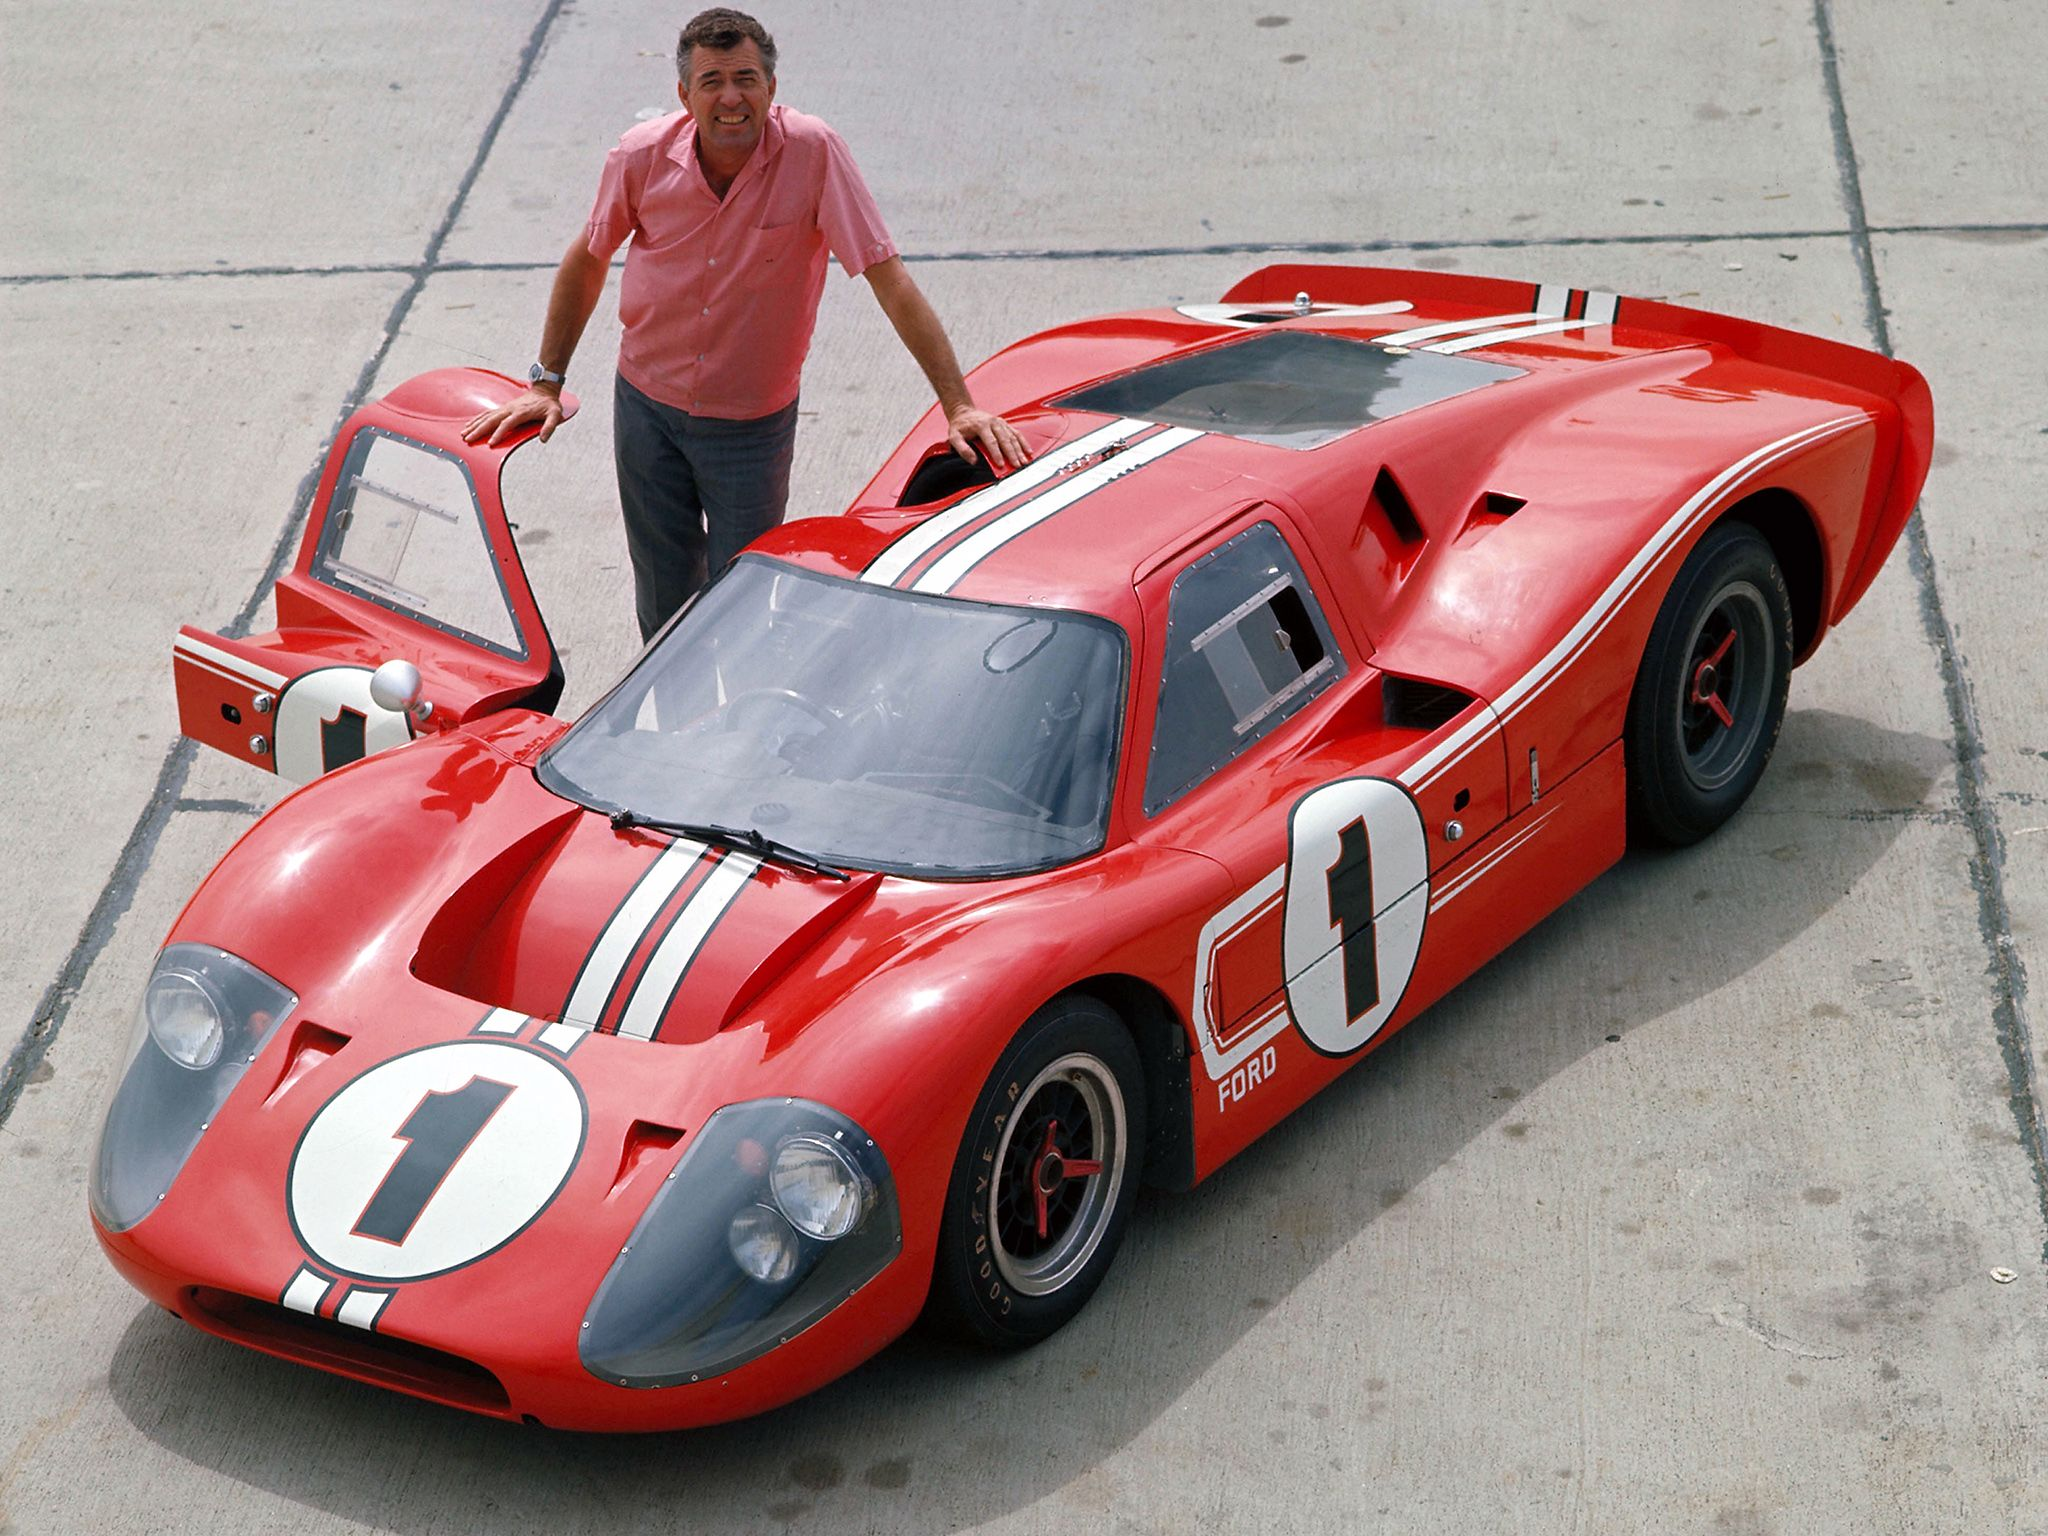 Carroll Shelby And The 1967 Le Mans Winning Ford Gt40 Mk Iv That He Ran As Team Owner For Dan Gurney And A J Foyt Ford Gt40 Carroll Shelby Ford Gt